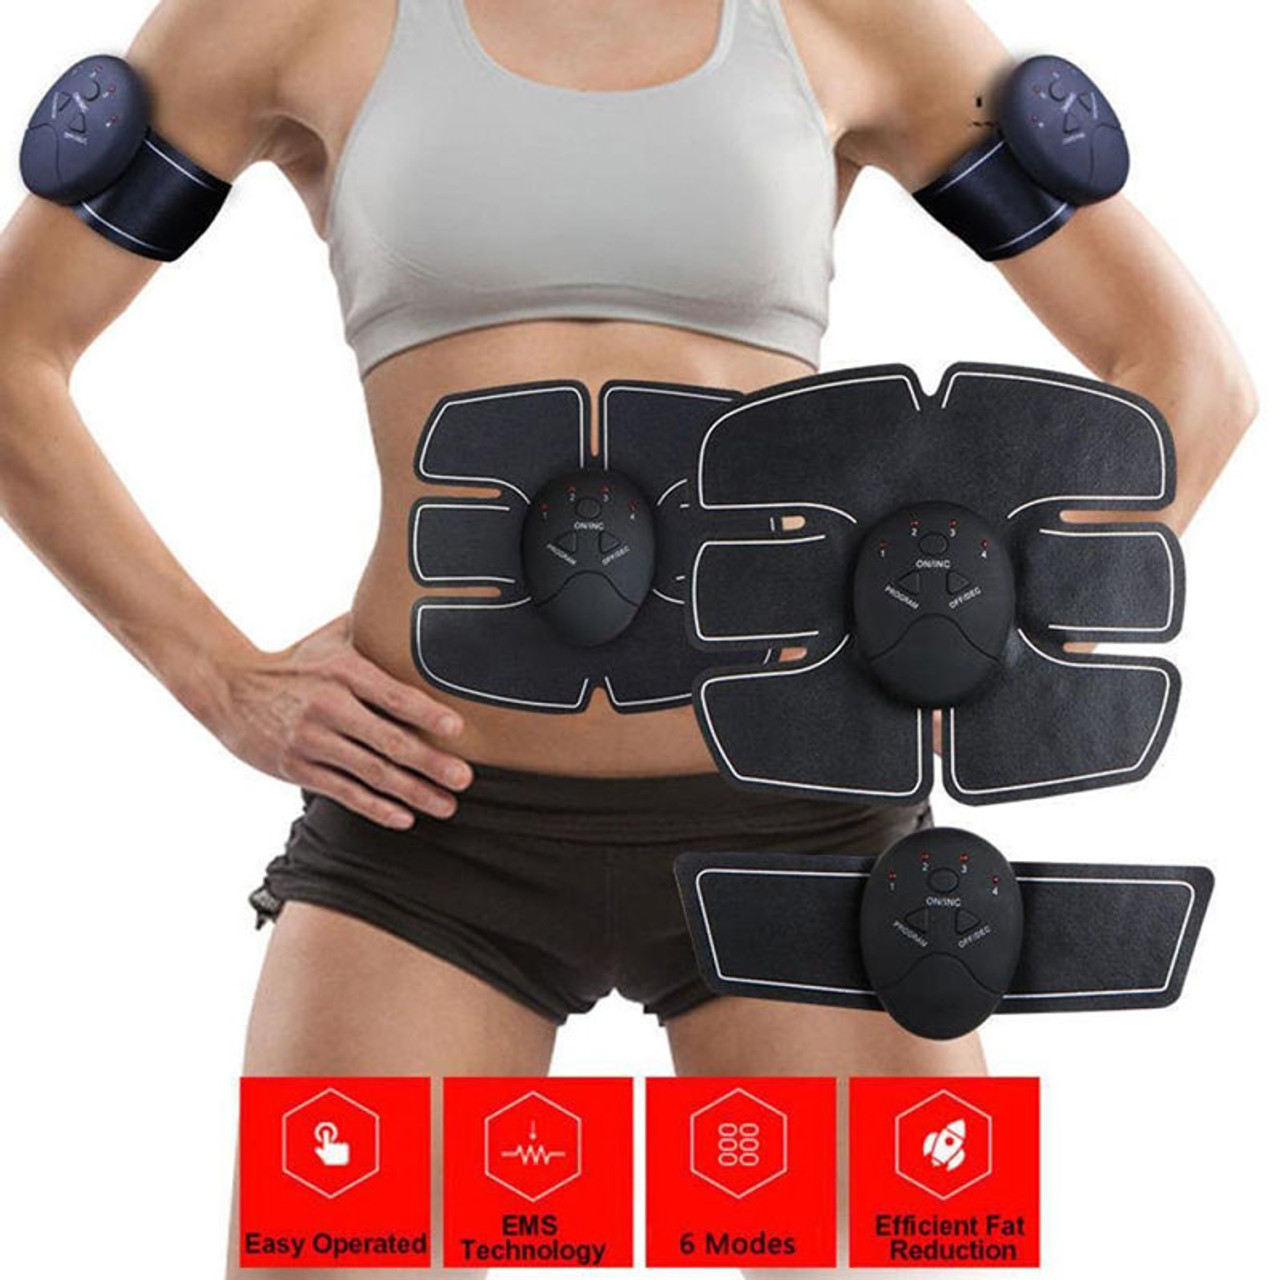 Stickers Muscle Fitness Exercise Patch Replacement Abdominal Training Device